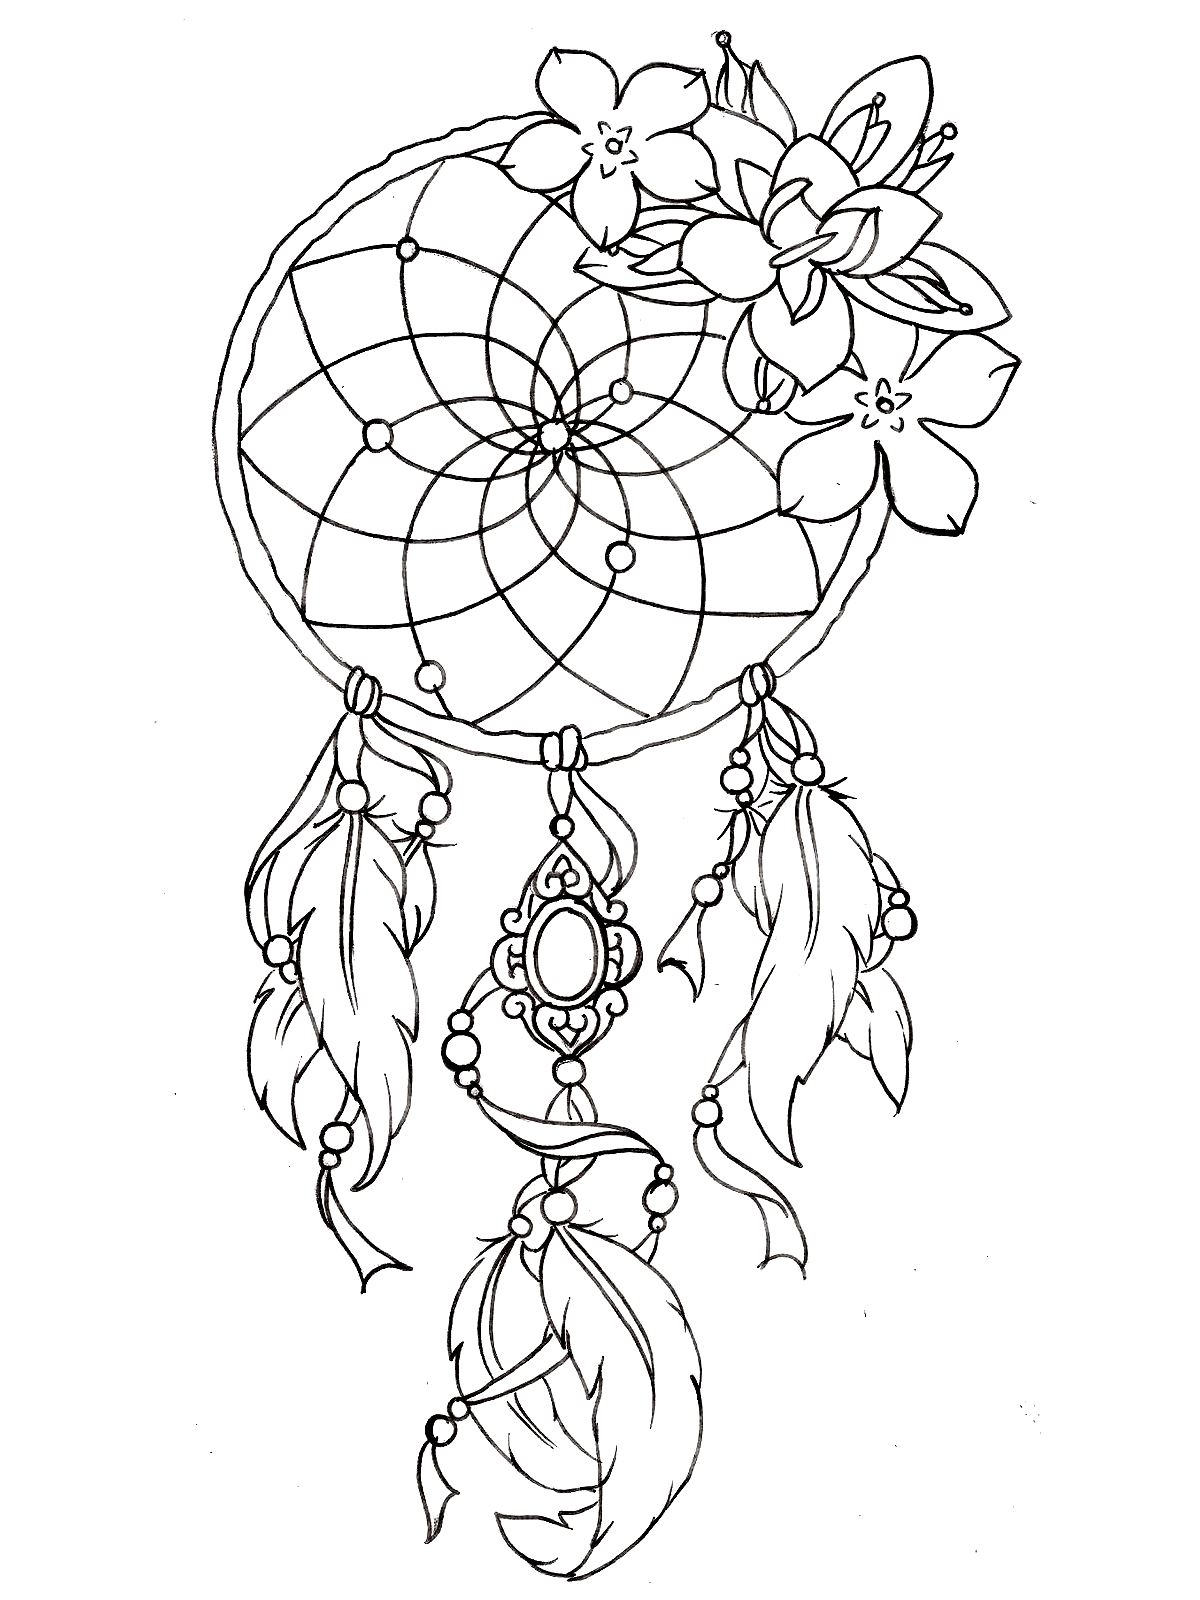 Coloring Page Dreamcatcher Tattoo Designs